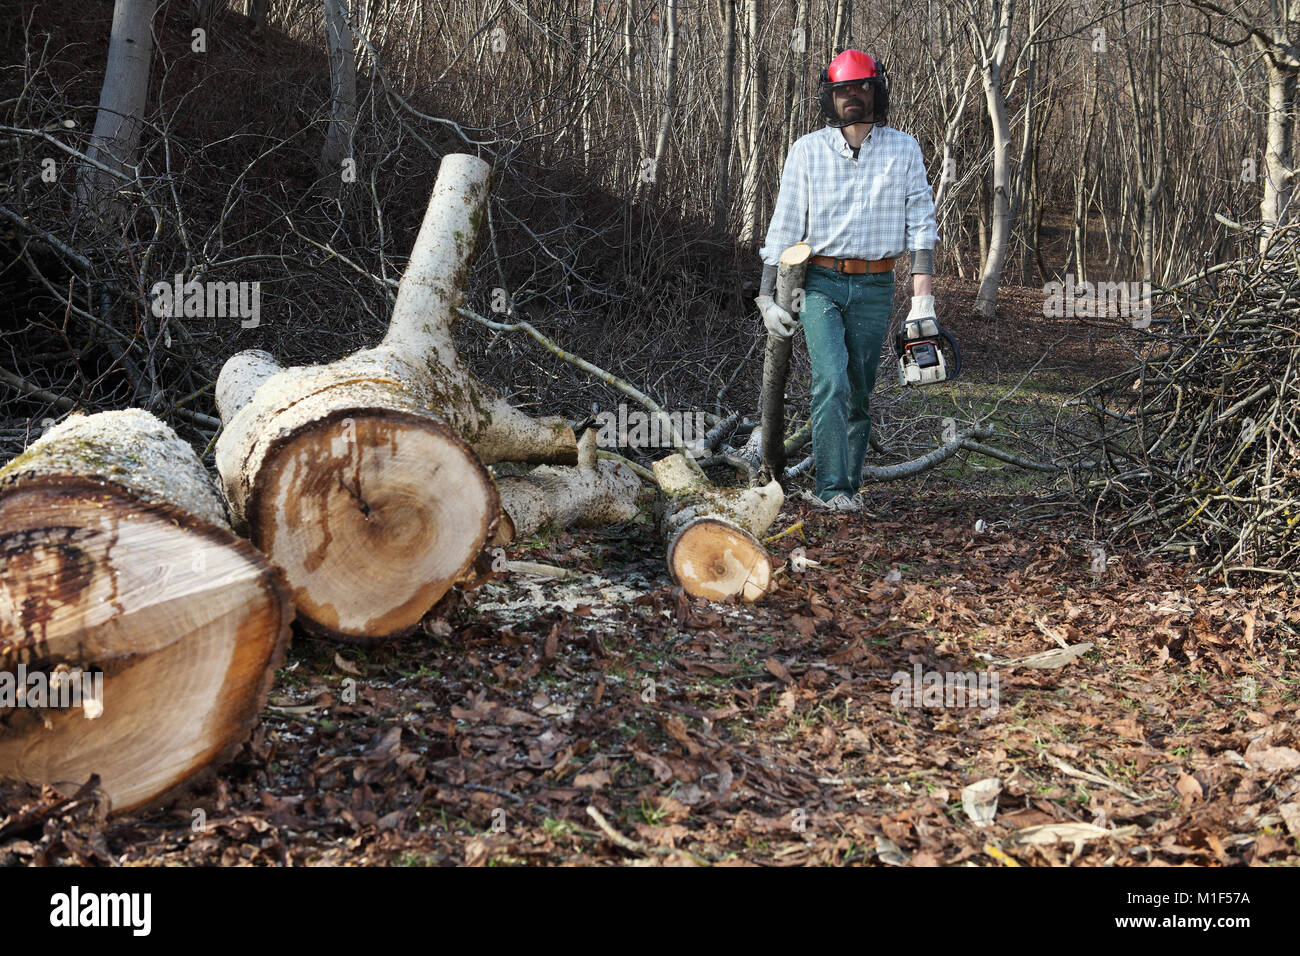 Lumberjack using chainsaw cutting big tree during the autumn wearing hardhat and headphones - Stock Image